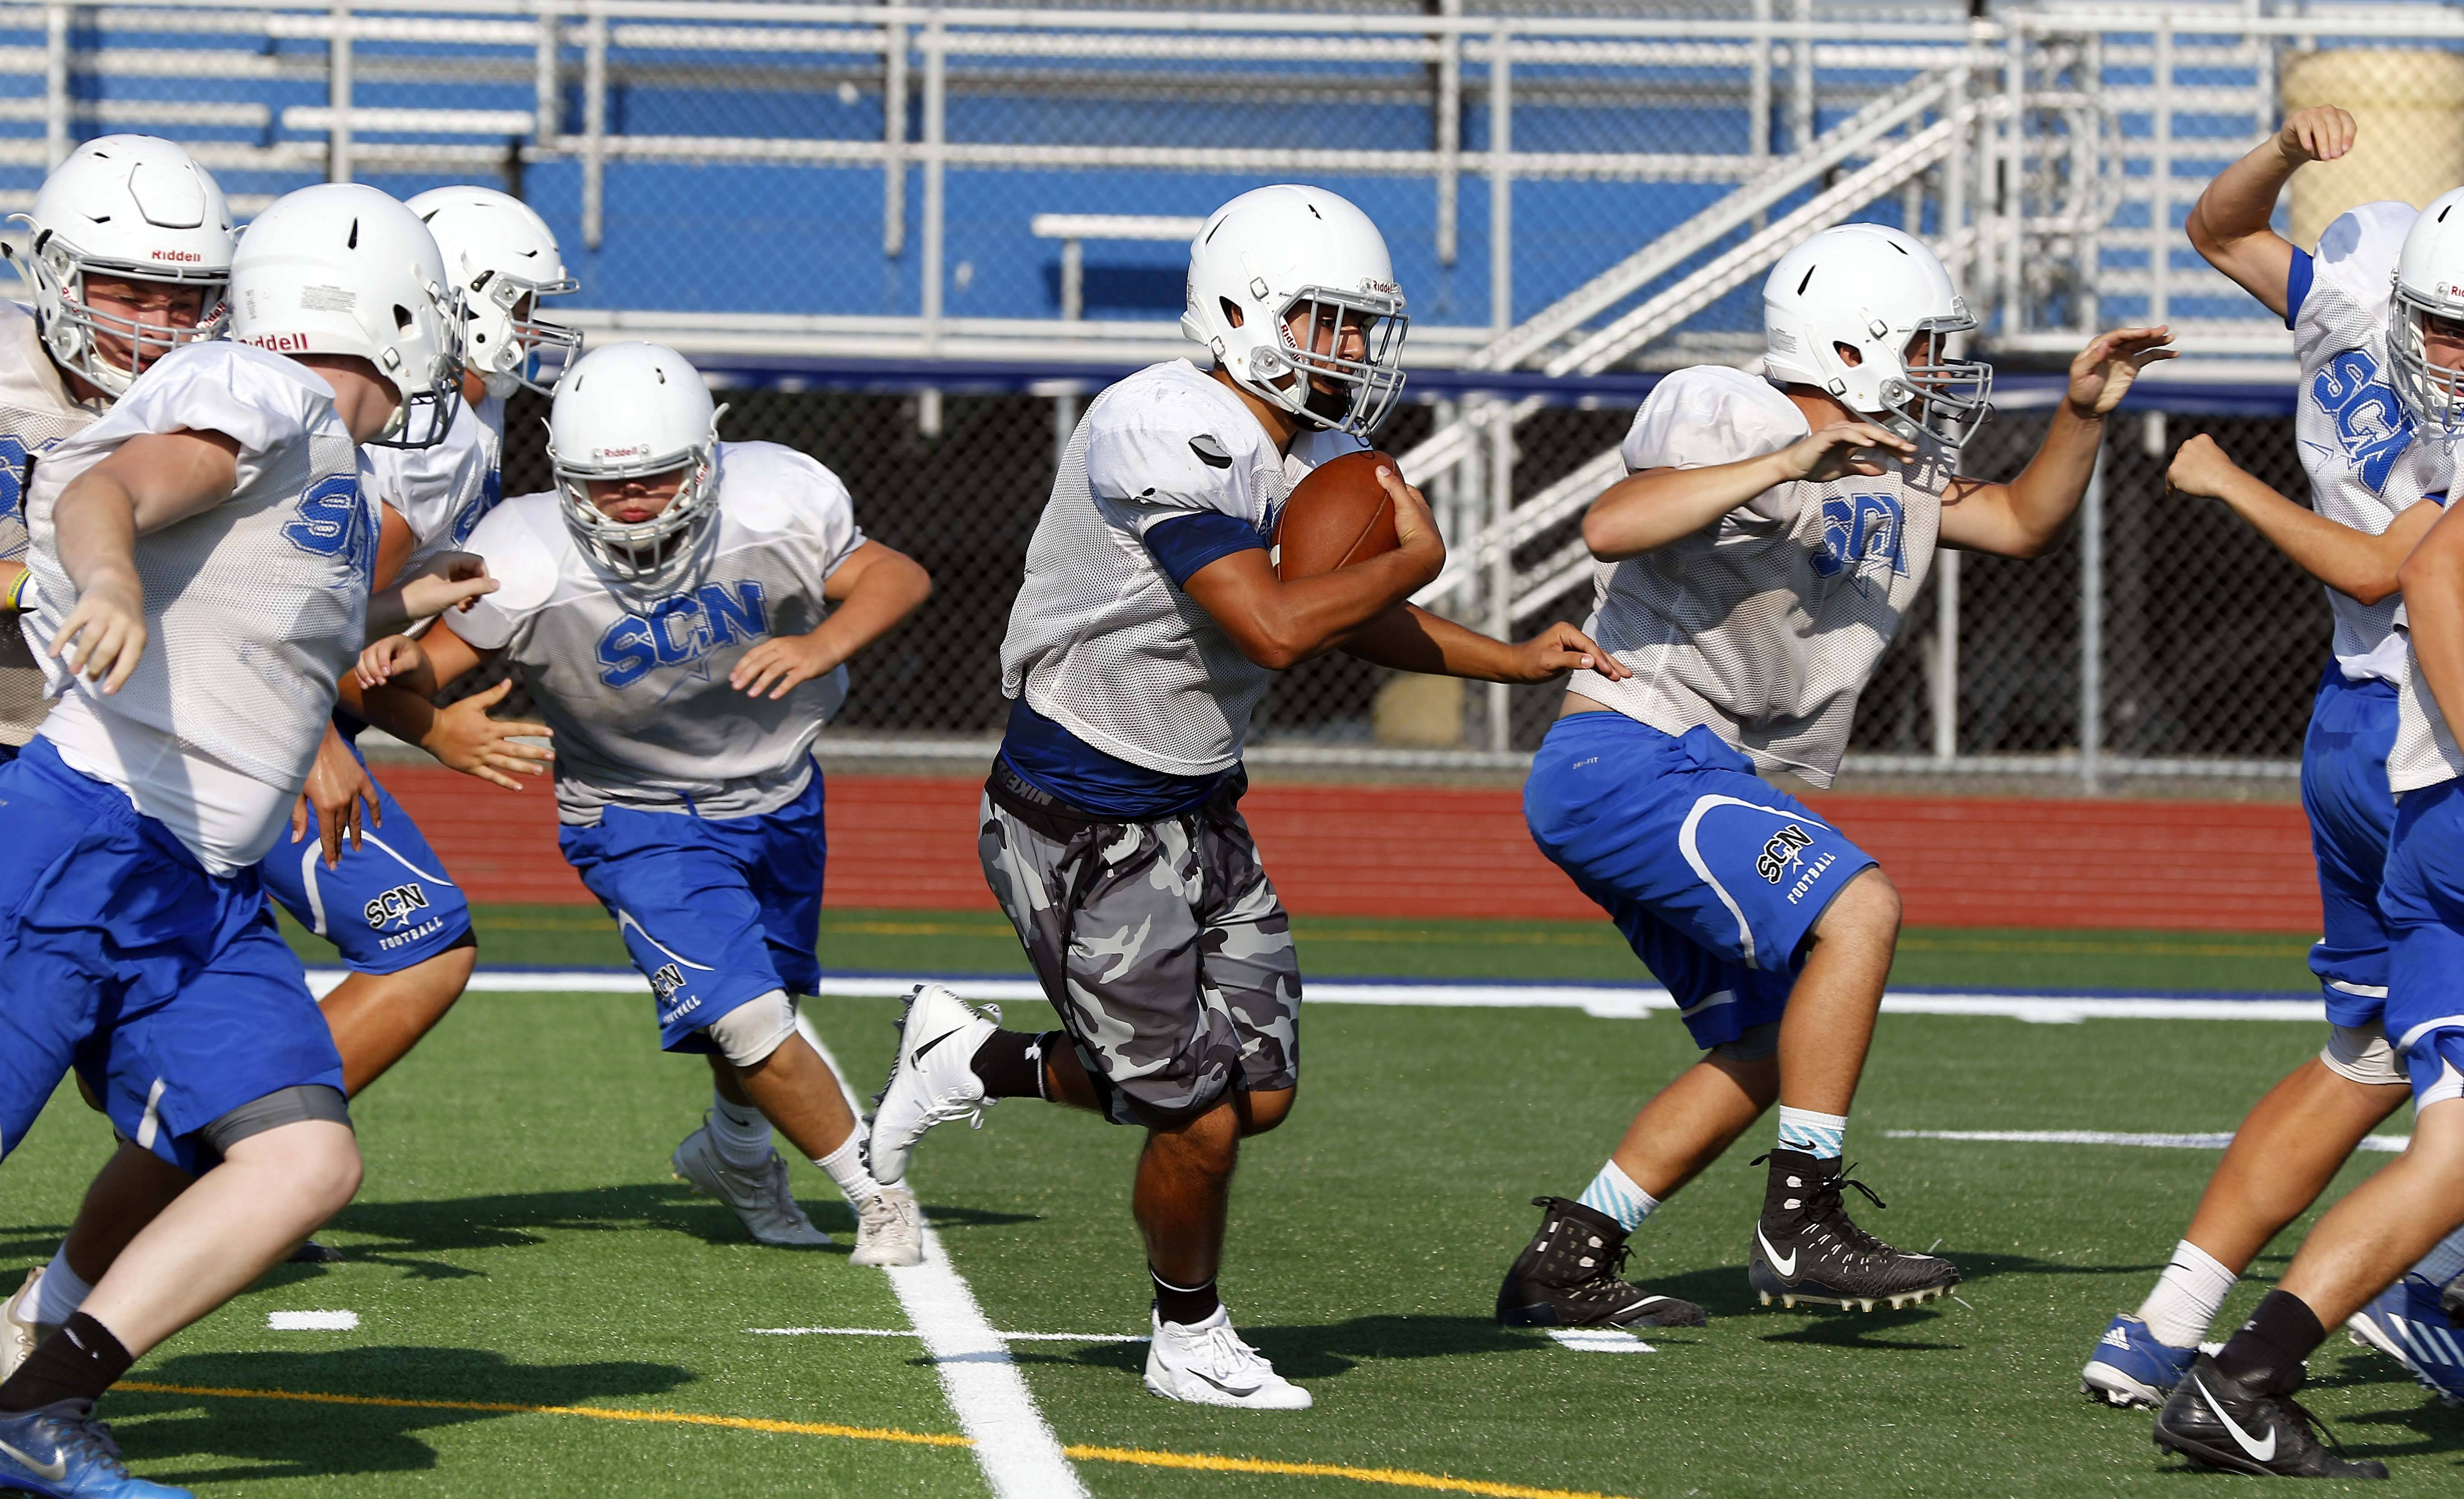 Sam Demarco works his way upfield with the ball during St. Charles North football practice.